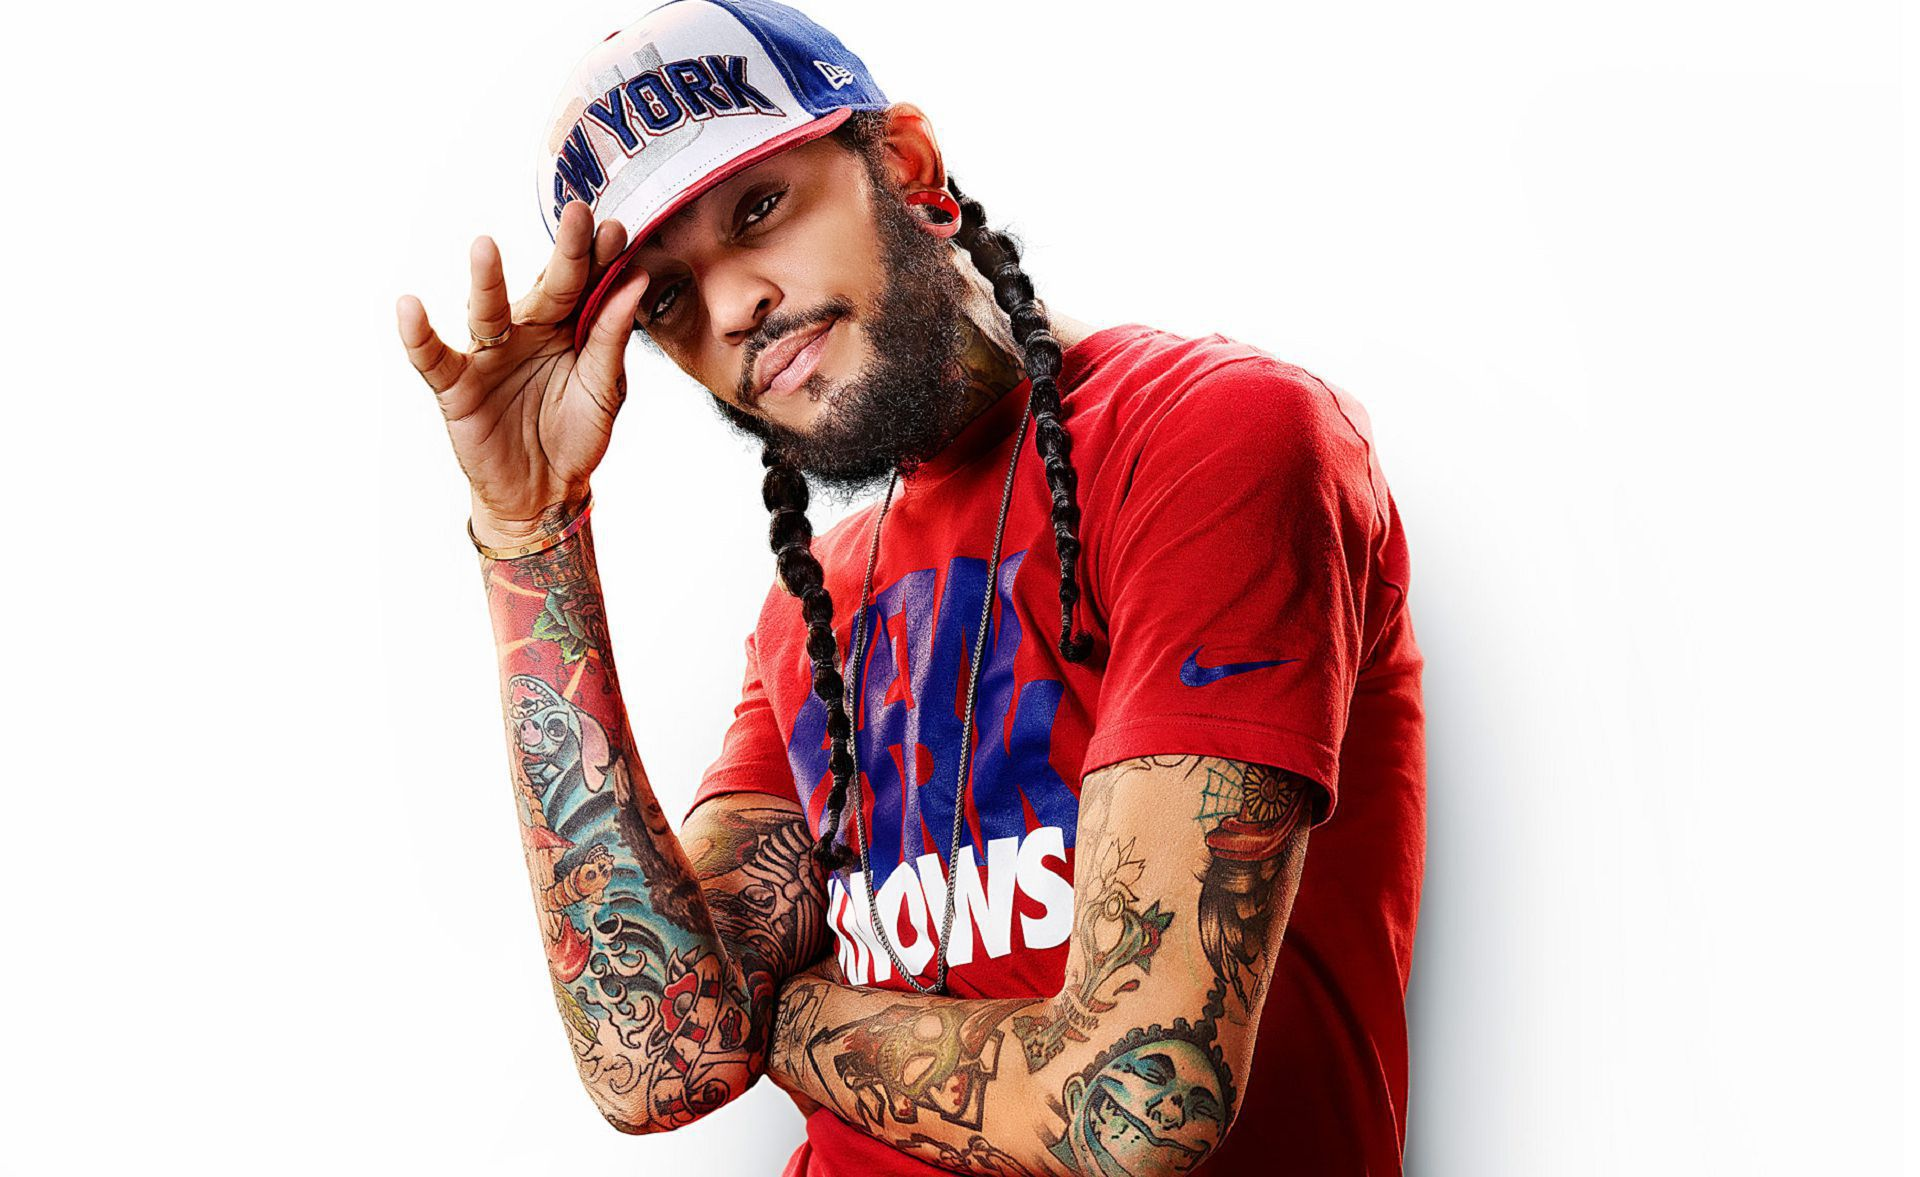 Pictures Of Travie Mccoy